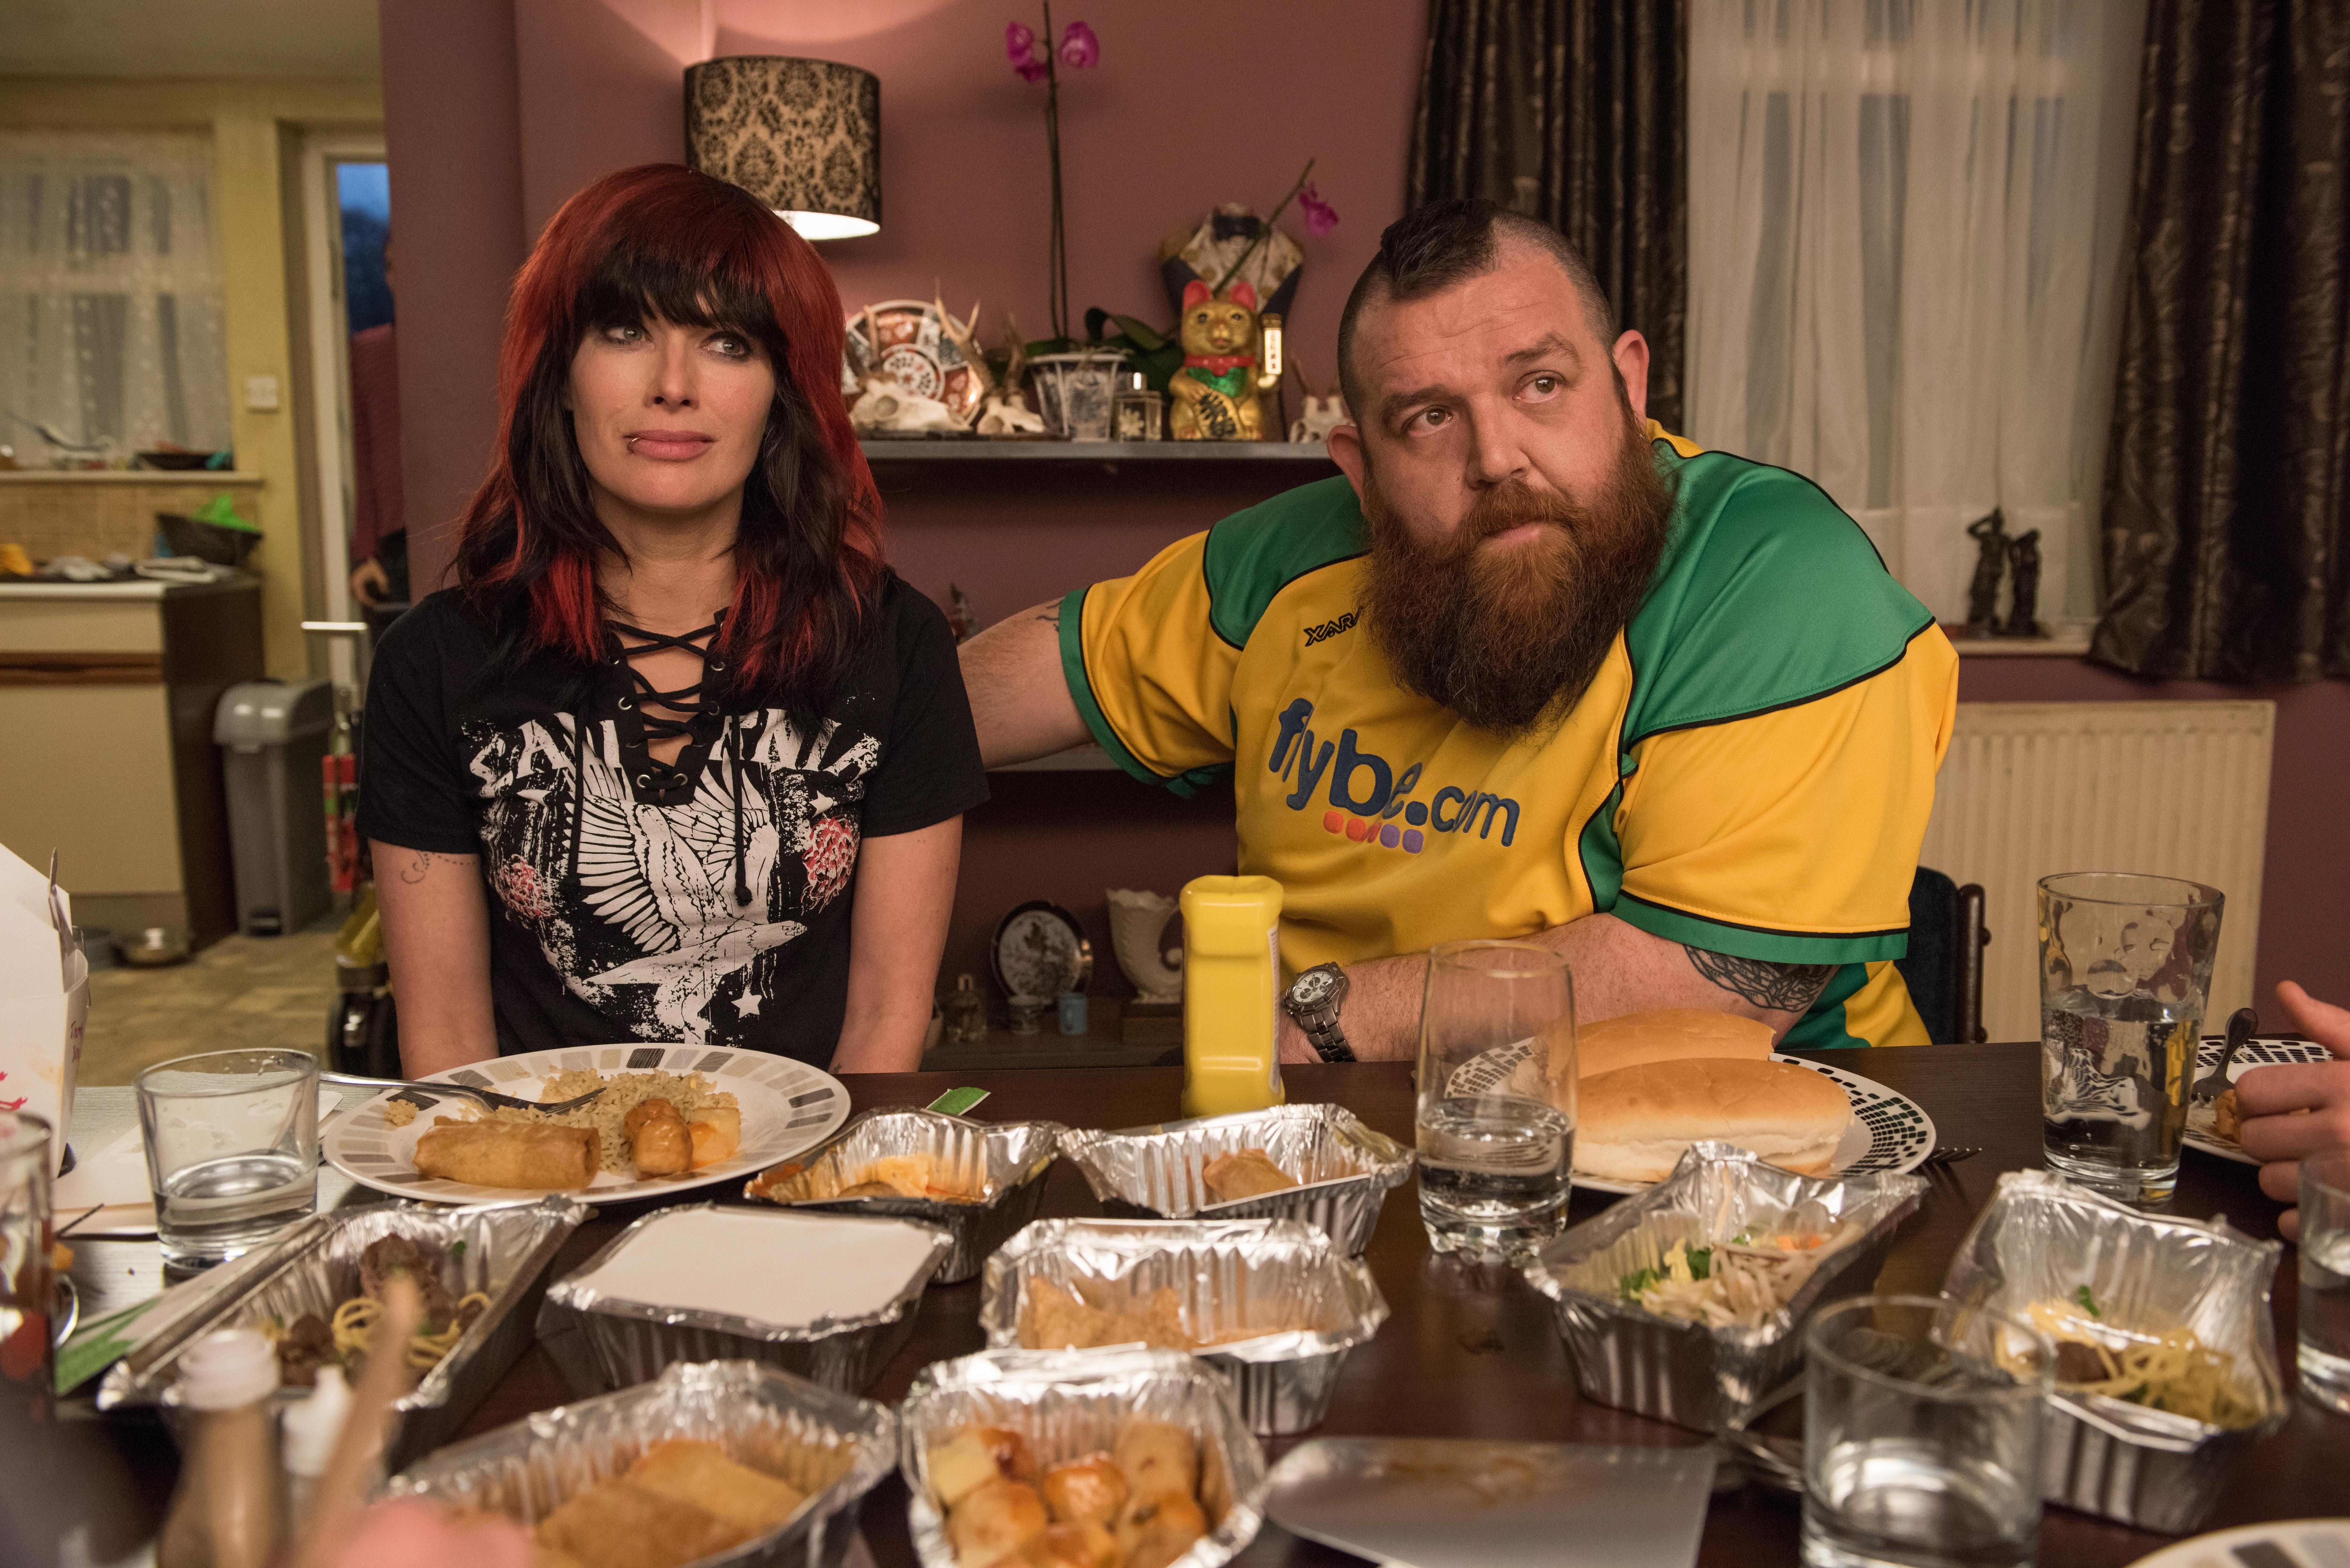 Lena Headey (left) as Julia Knight and Nick Frost (right) as Ricky Knight in FIGHTING WITH MY FAMILY, directed by Stephen Merchant, a Metro Goldwyn Mayer Pictures film.Credit: Robert Viglasky / Metro Goldwyn Mayer Pictures© 2018 Metro-Goldwyn-Mayer Pictures Inc.{ } All Rights Reserved.